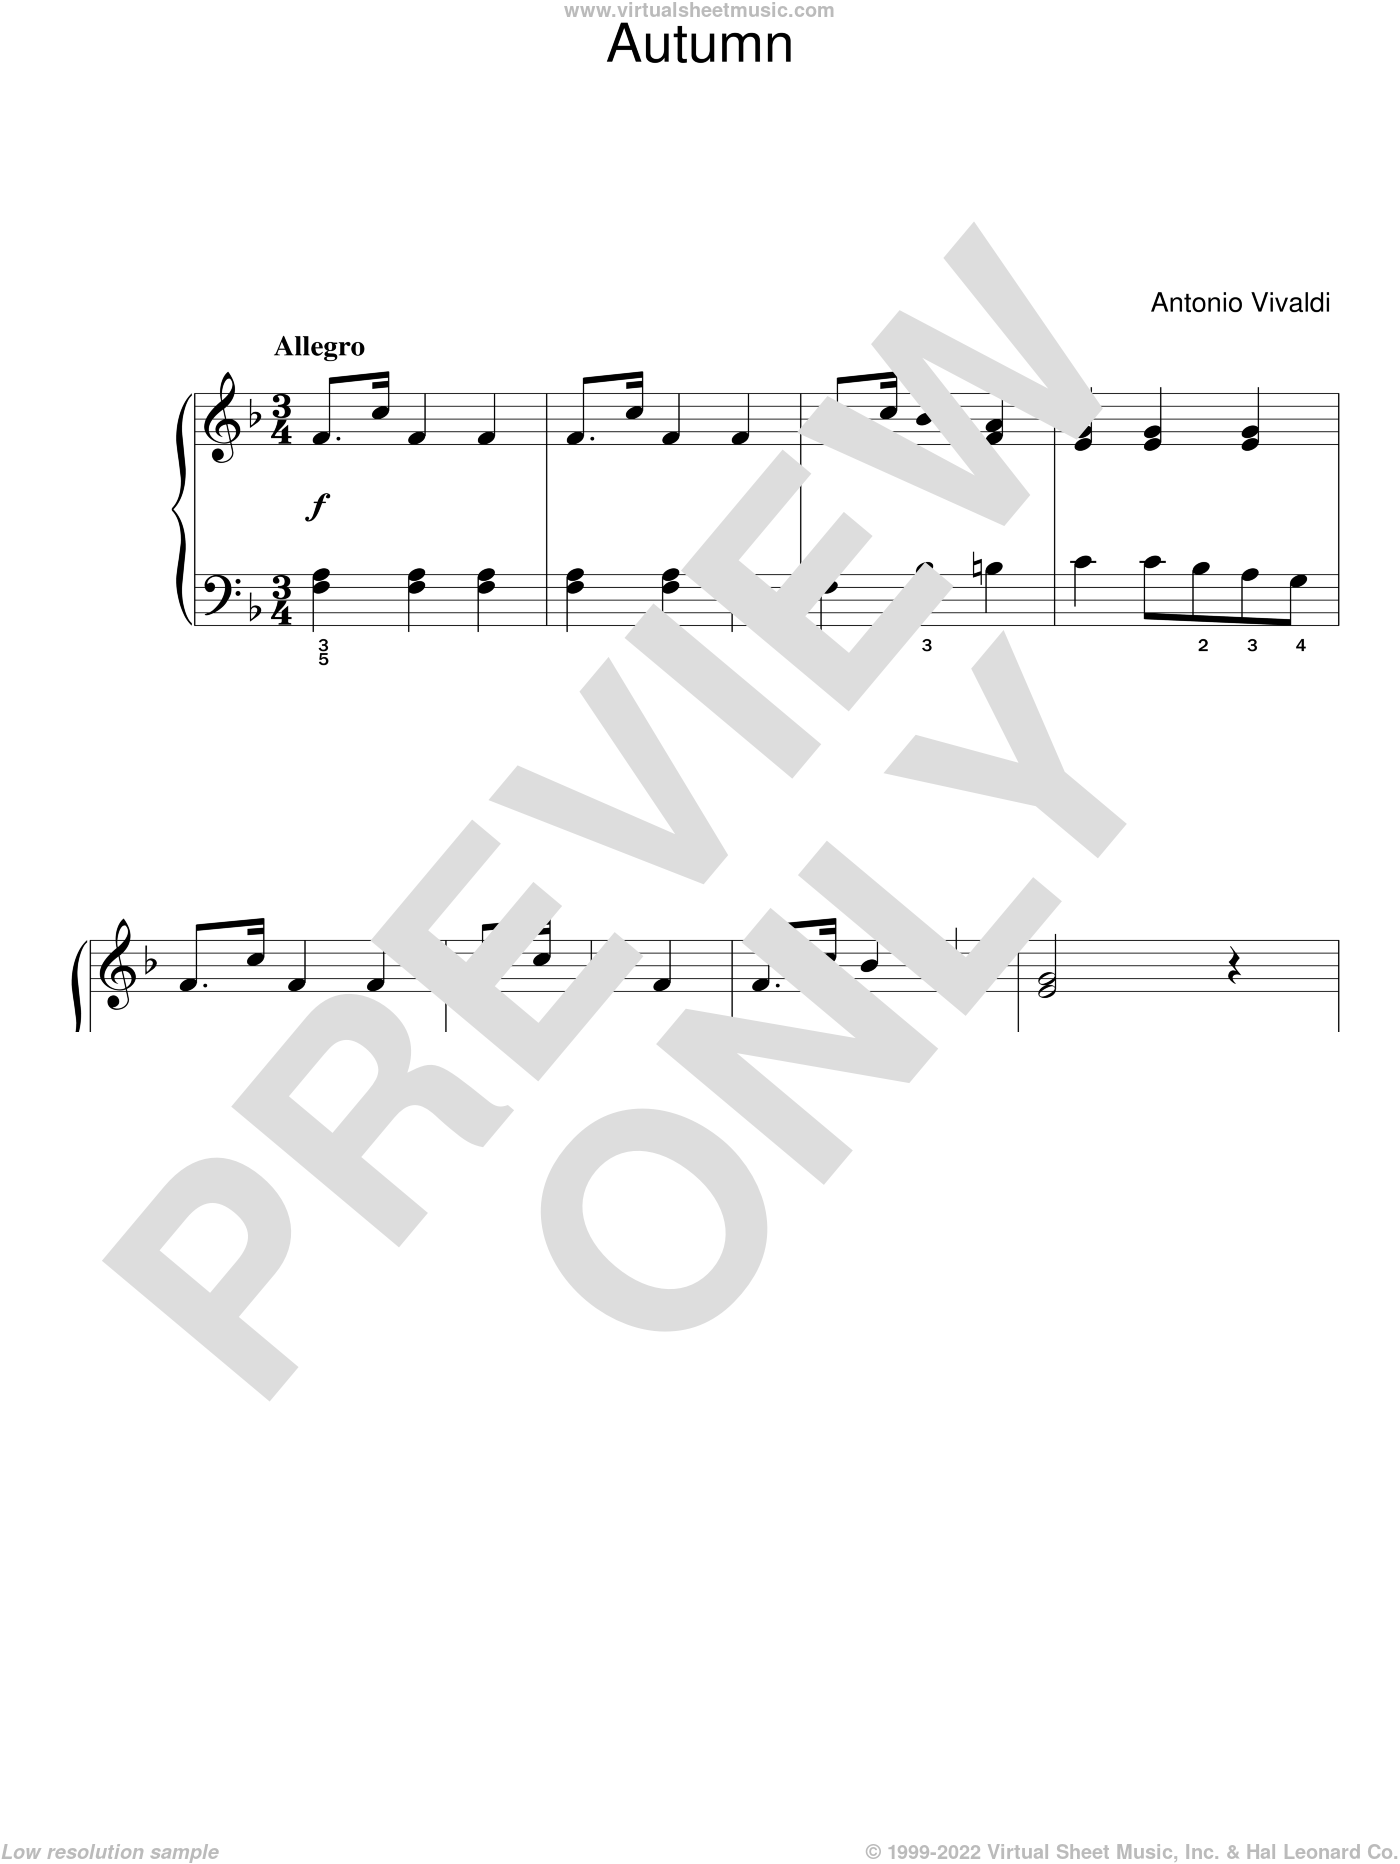 Autumn (from The Four Seasons) sheet music for piano solo by Antonio Vivaldi, classical score, easy skill level